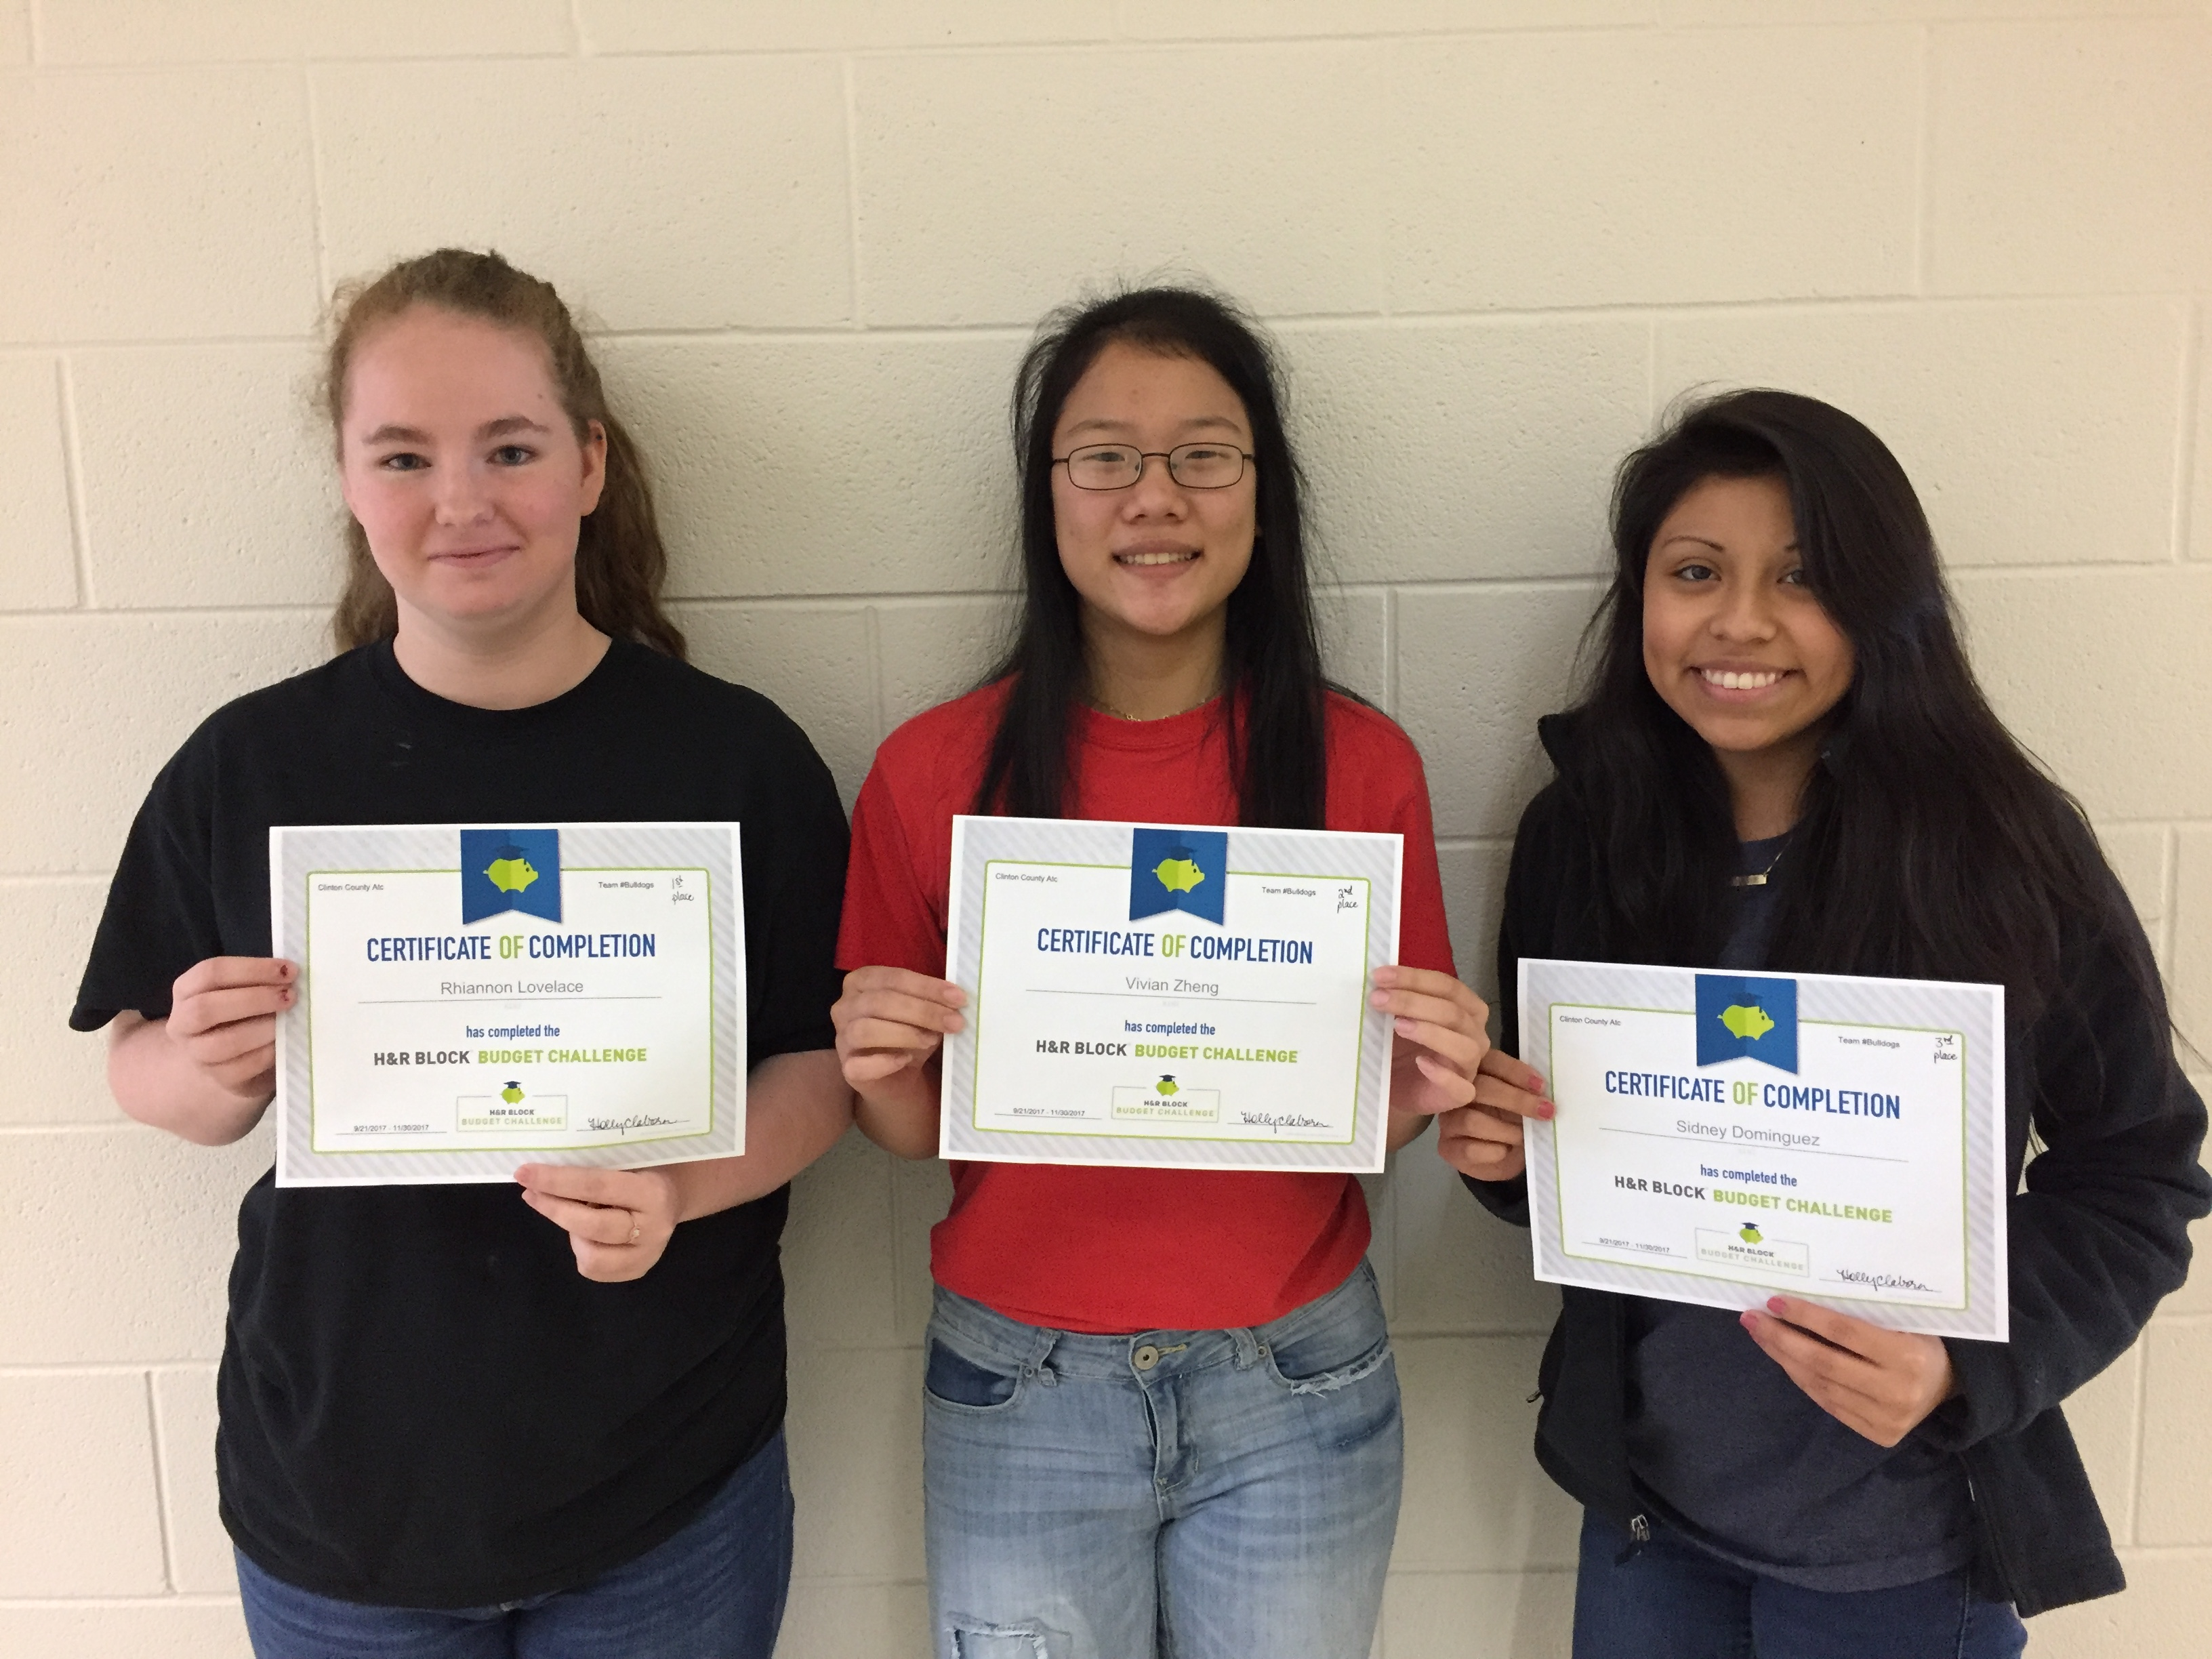 Pictured here are the top three finishers in the H & R Block Challenge for this semester at CCATC.